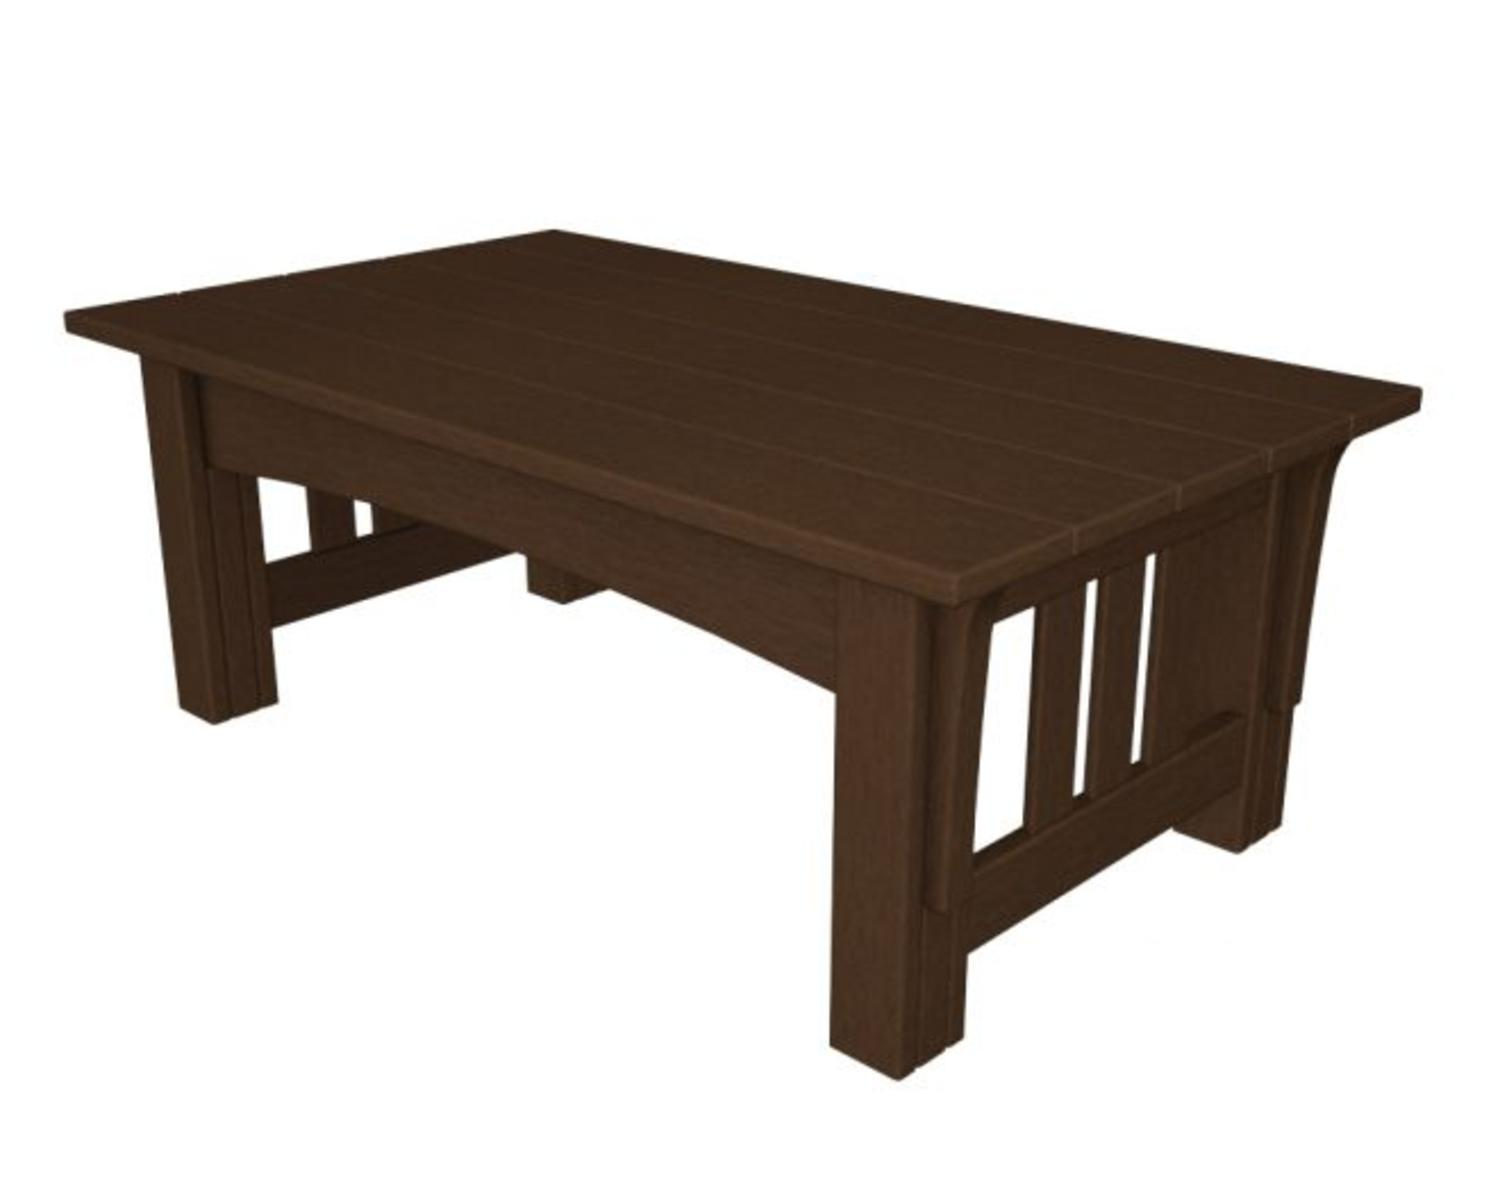 Recycled Earth-Friendly Outdoor Patio Mission Style Coffee Table Chocolate Brown by Eco-Friendly Furnishings